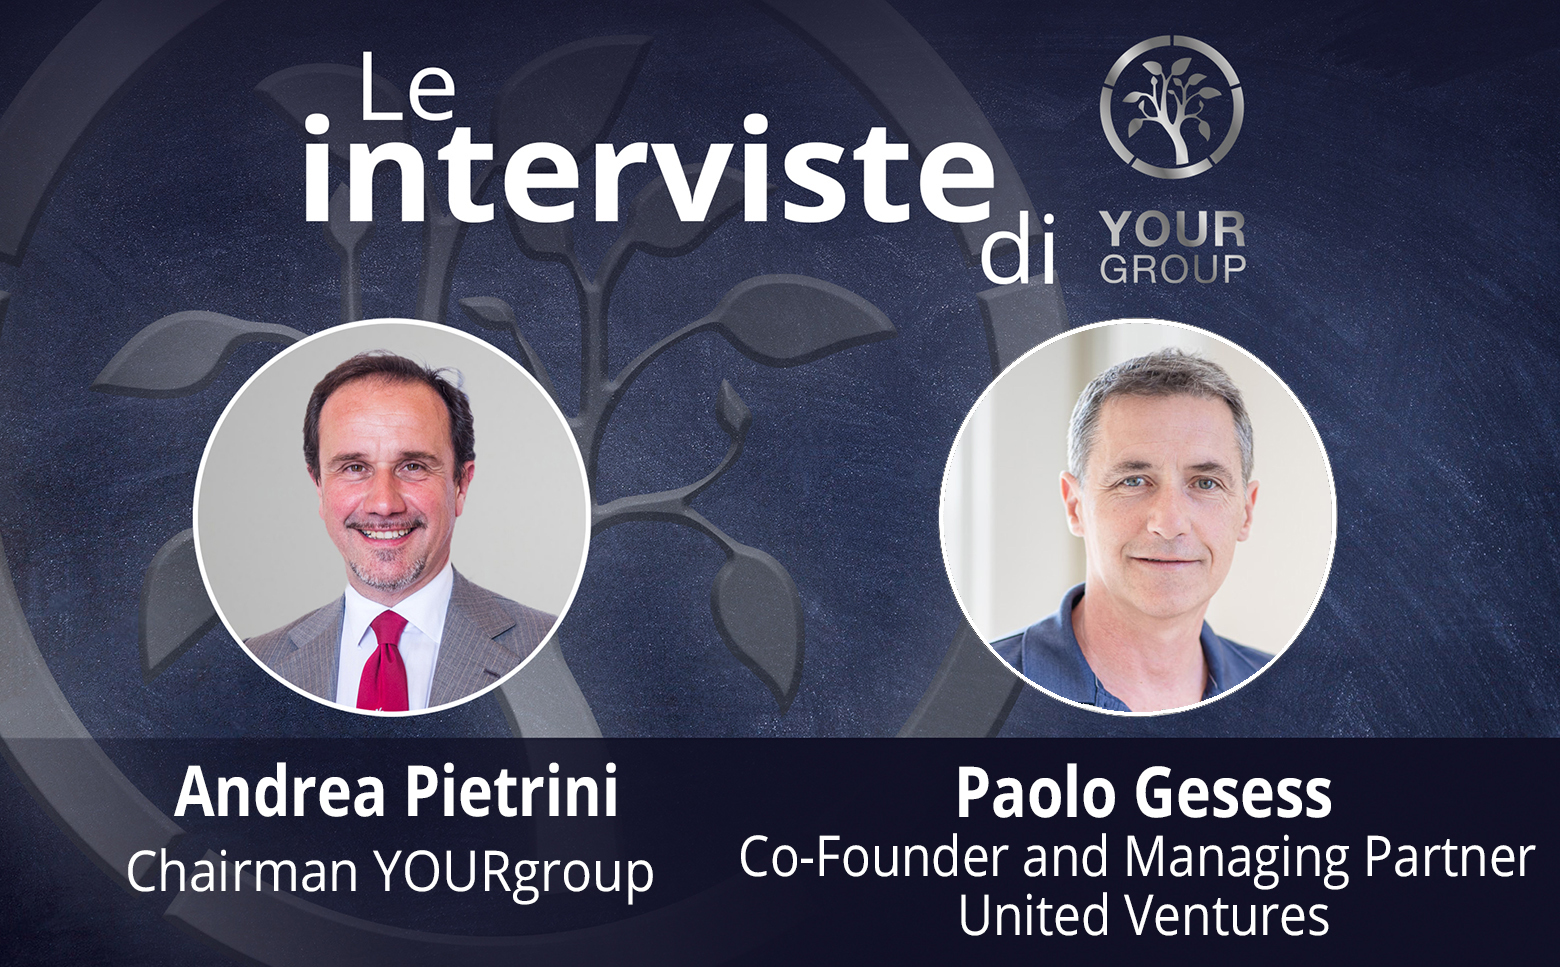 Paolo Gesess per YOURgroup